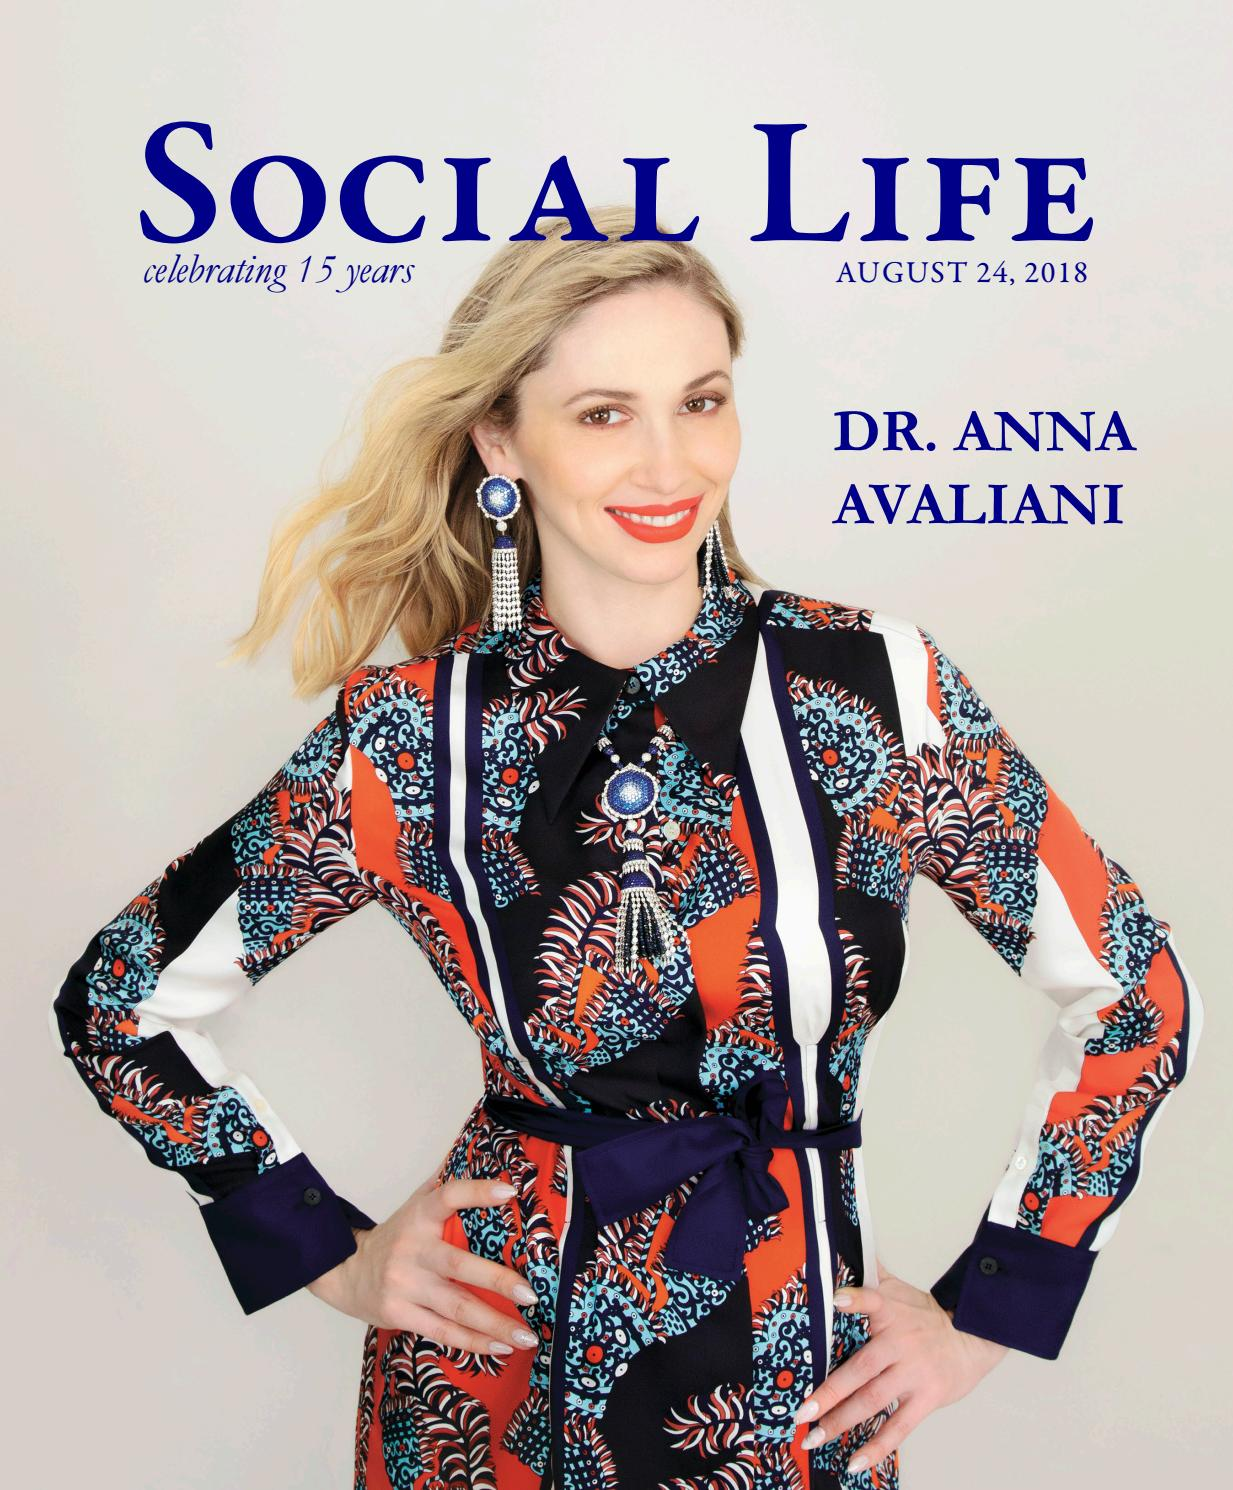 d76d514af9372b Social Life - August 24 2018 - Dr. Anna Avaliani by Social Life Magazine -  issuu